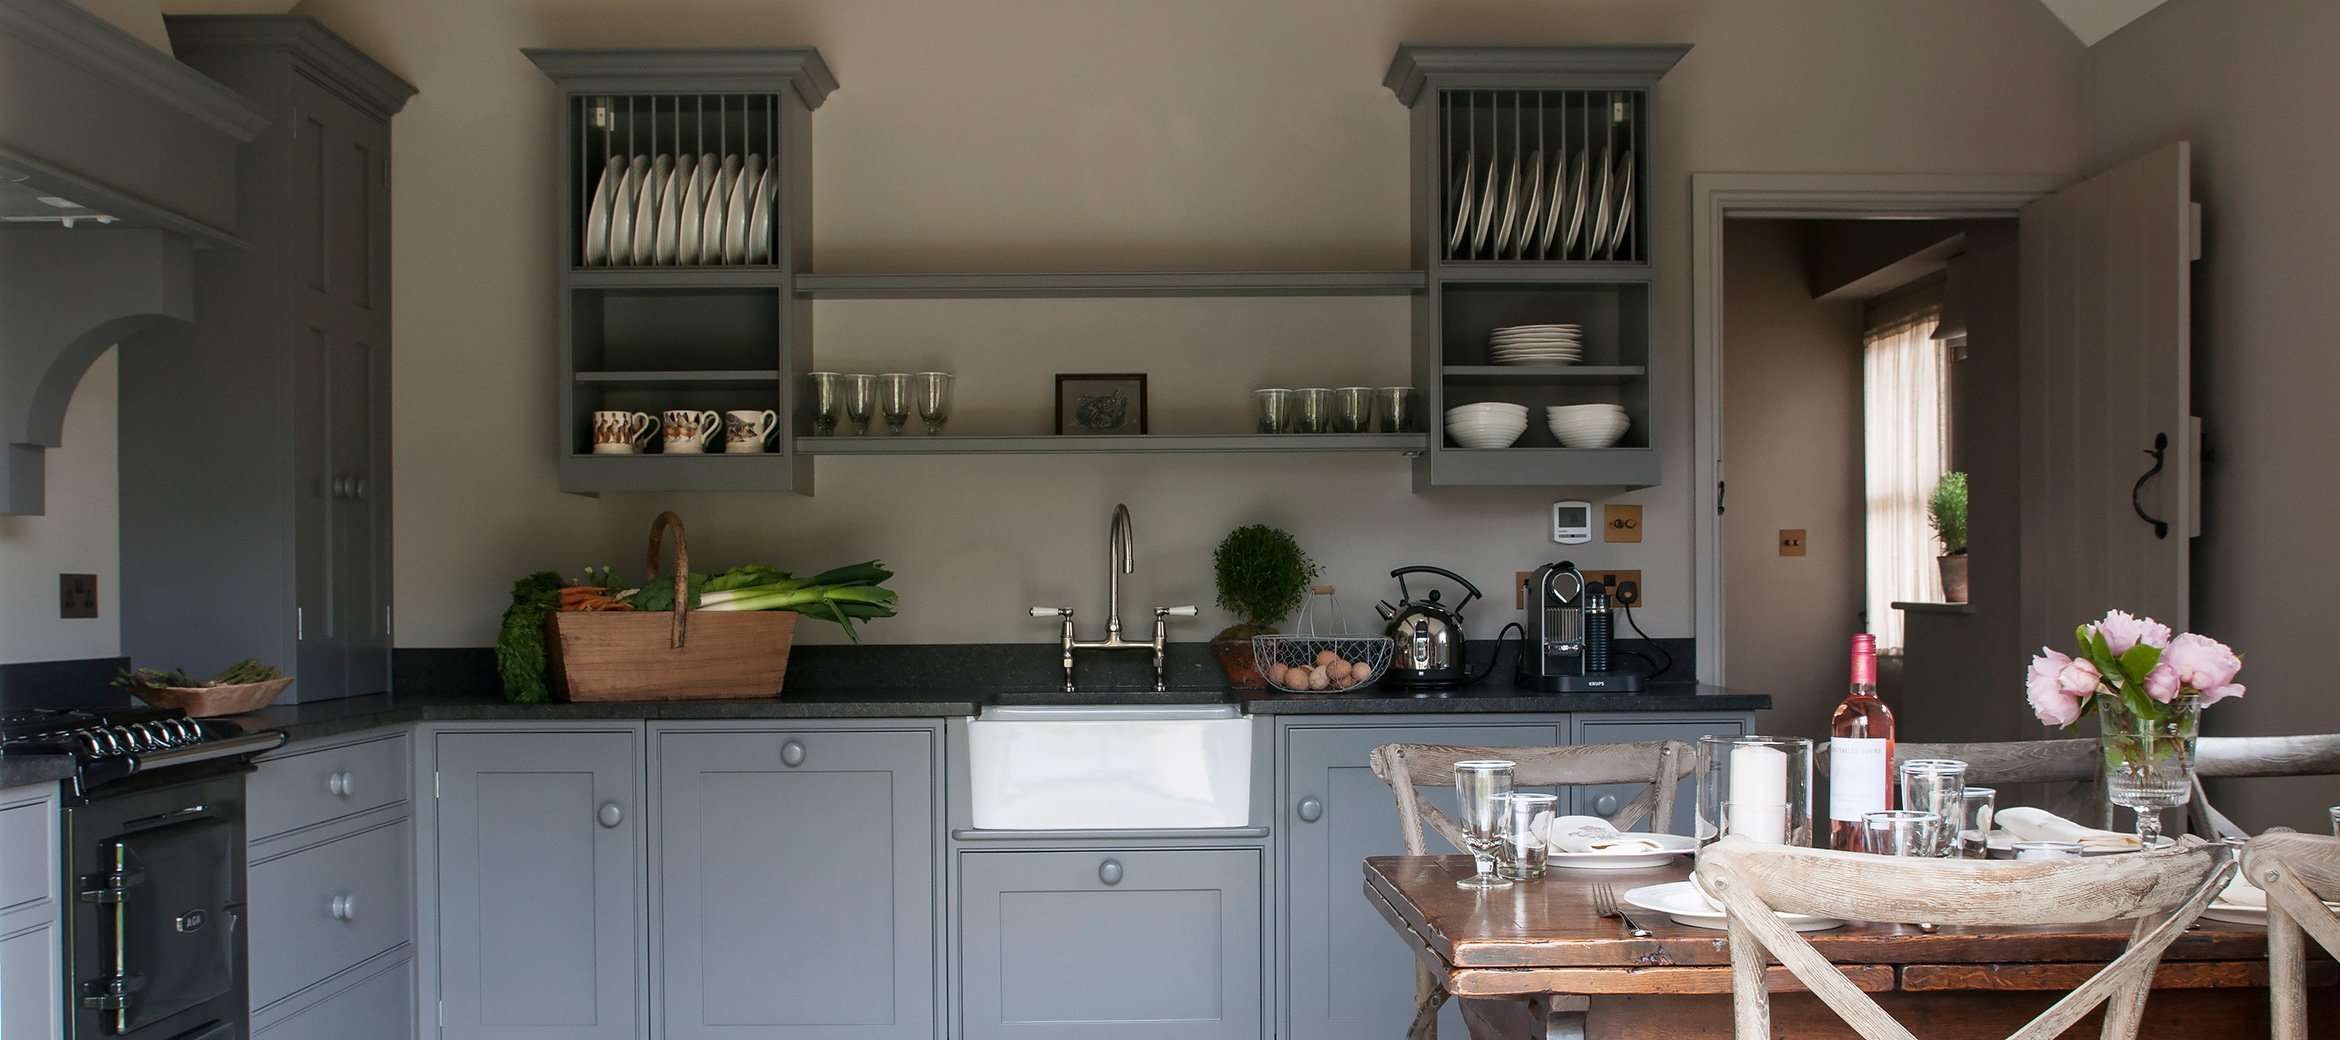 dovecote-luxury-cotswold-cottage-kitchen-dining-room